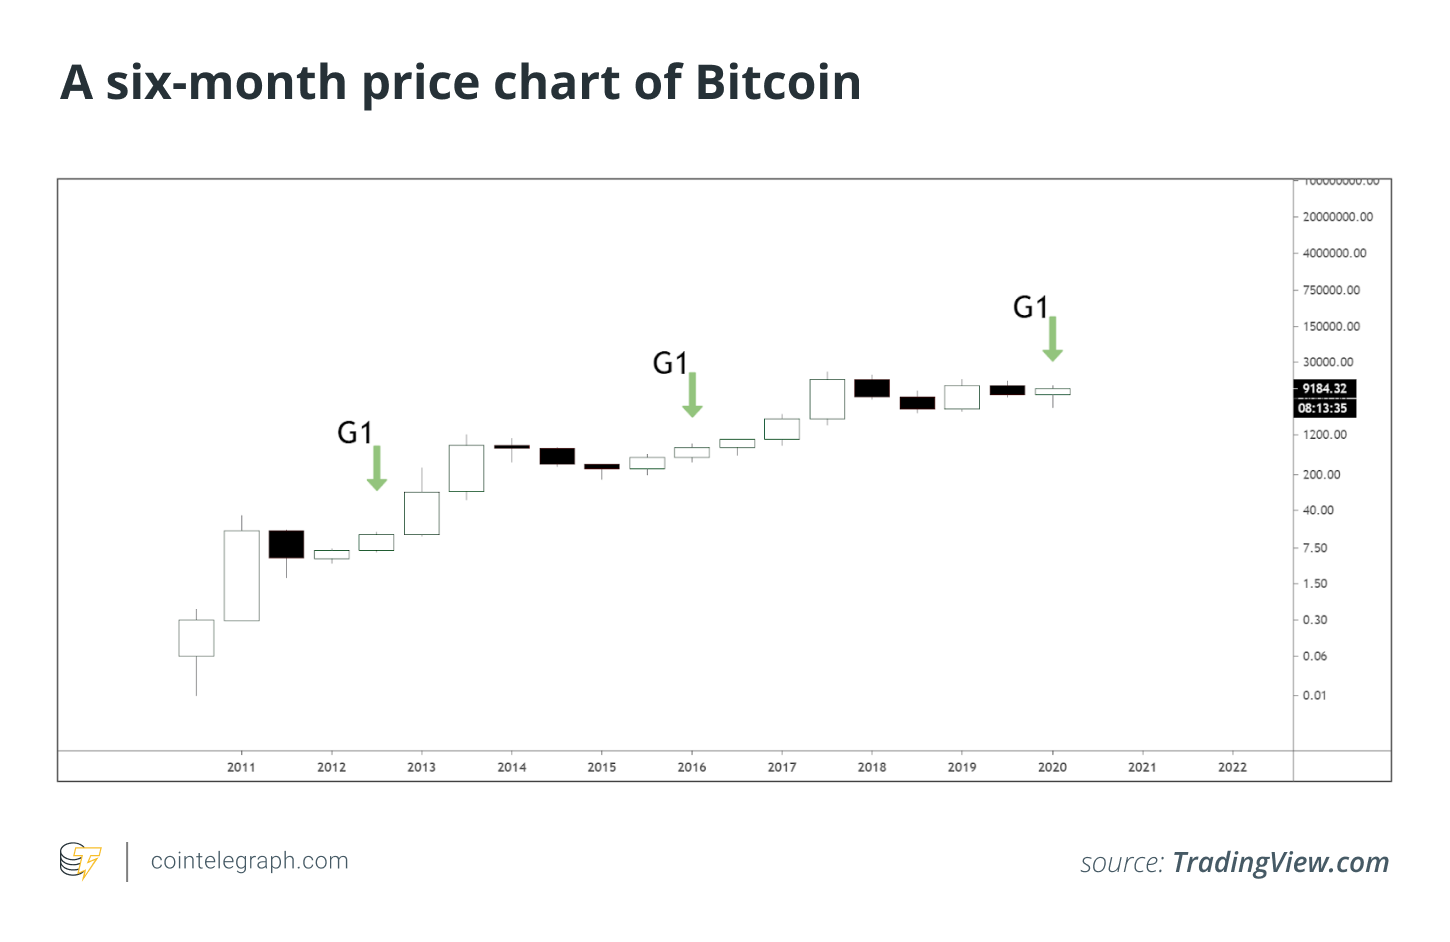 A six-month Bitcoin price chart